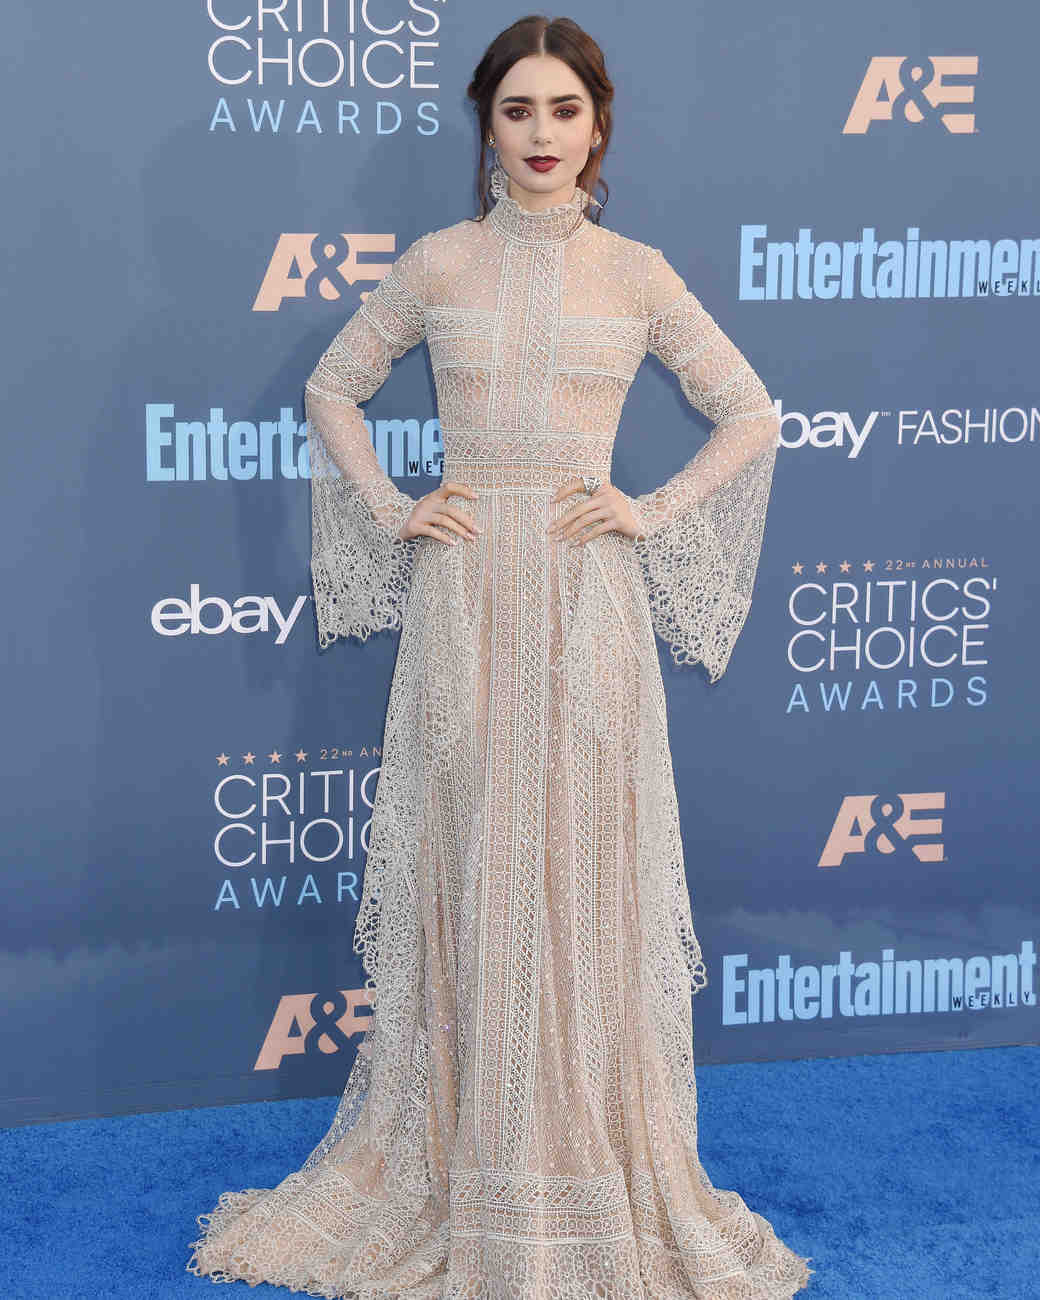 The year-old actress and singer was one of the first celebs to walk the red carpet. She wore a fiery Giambattista Valli dress, Jimmy Choo shoes, and a Chopard necklace.